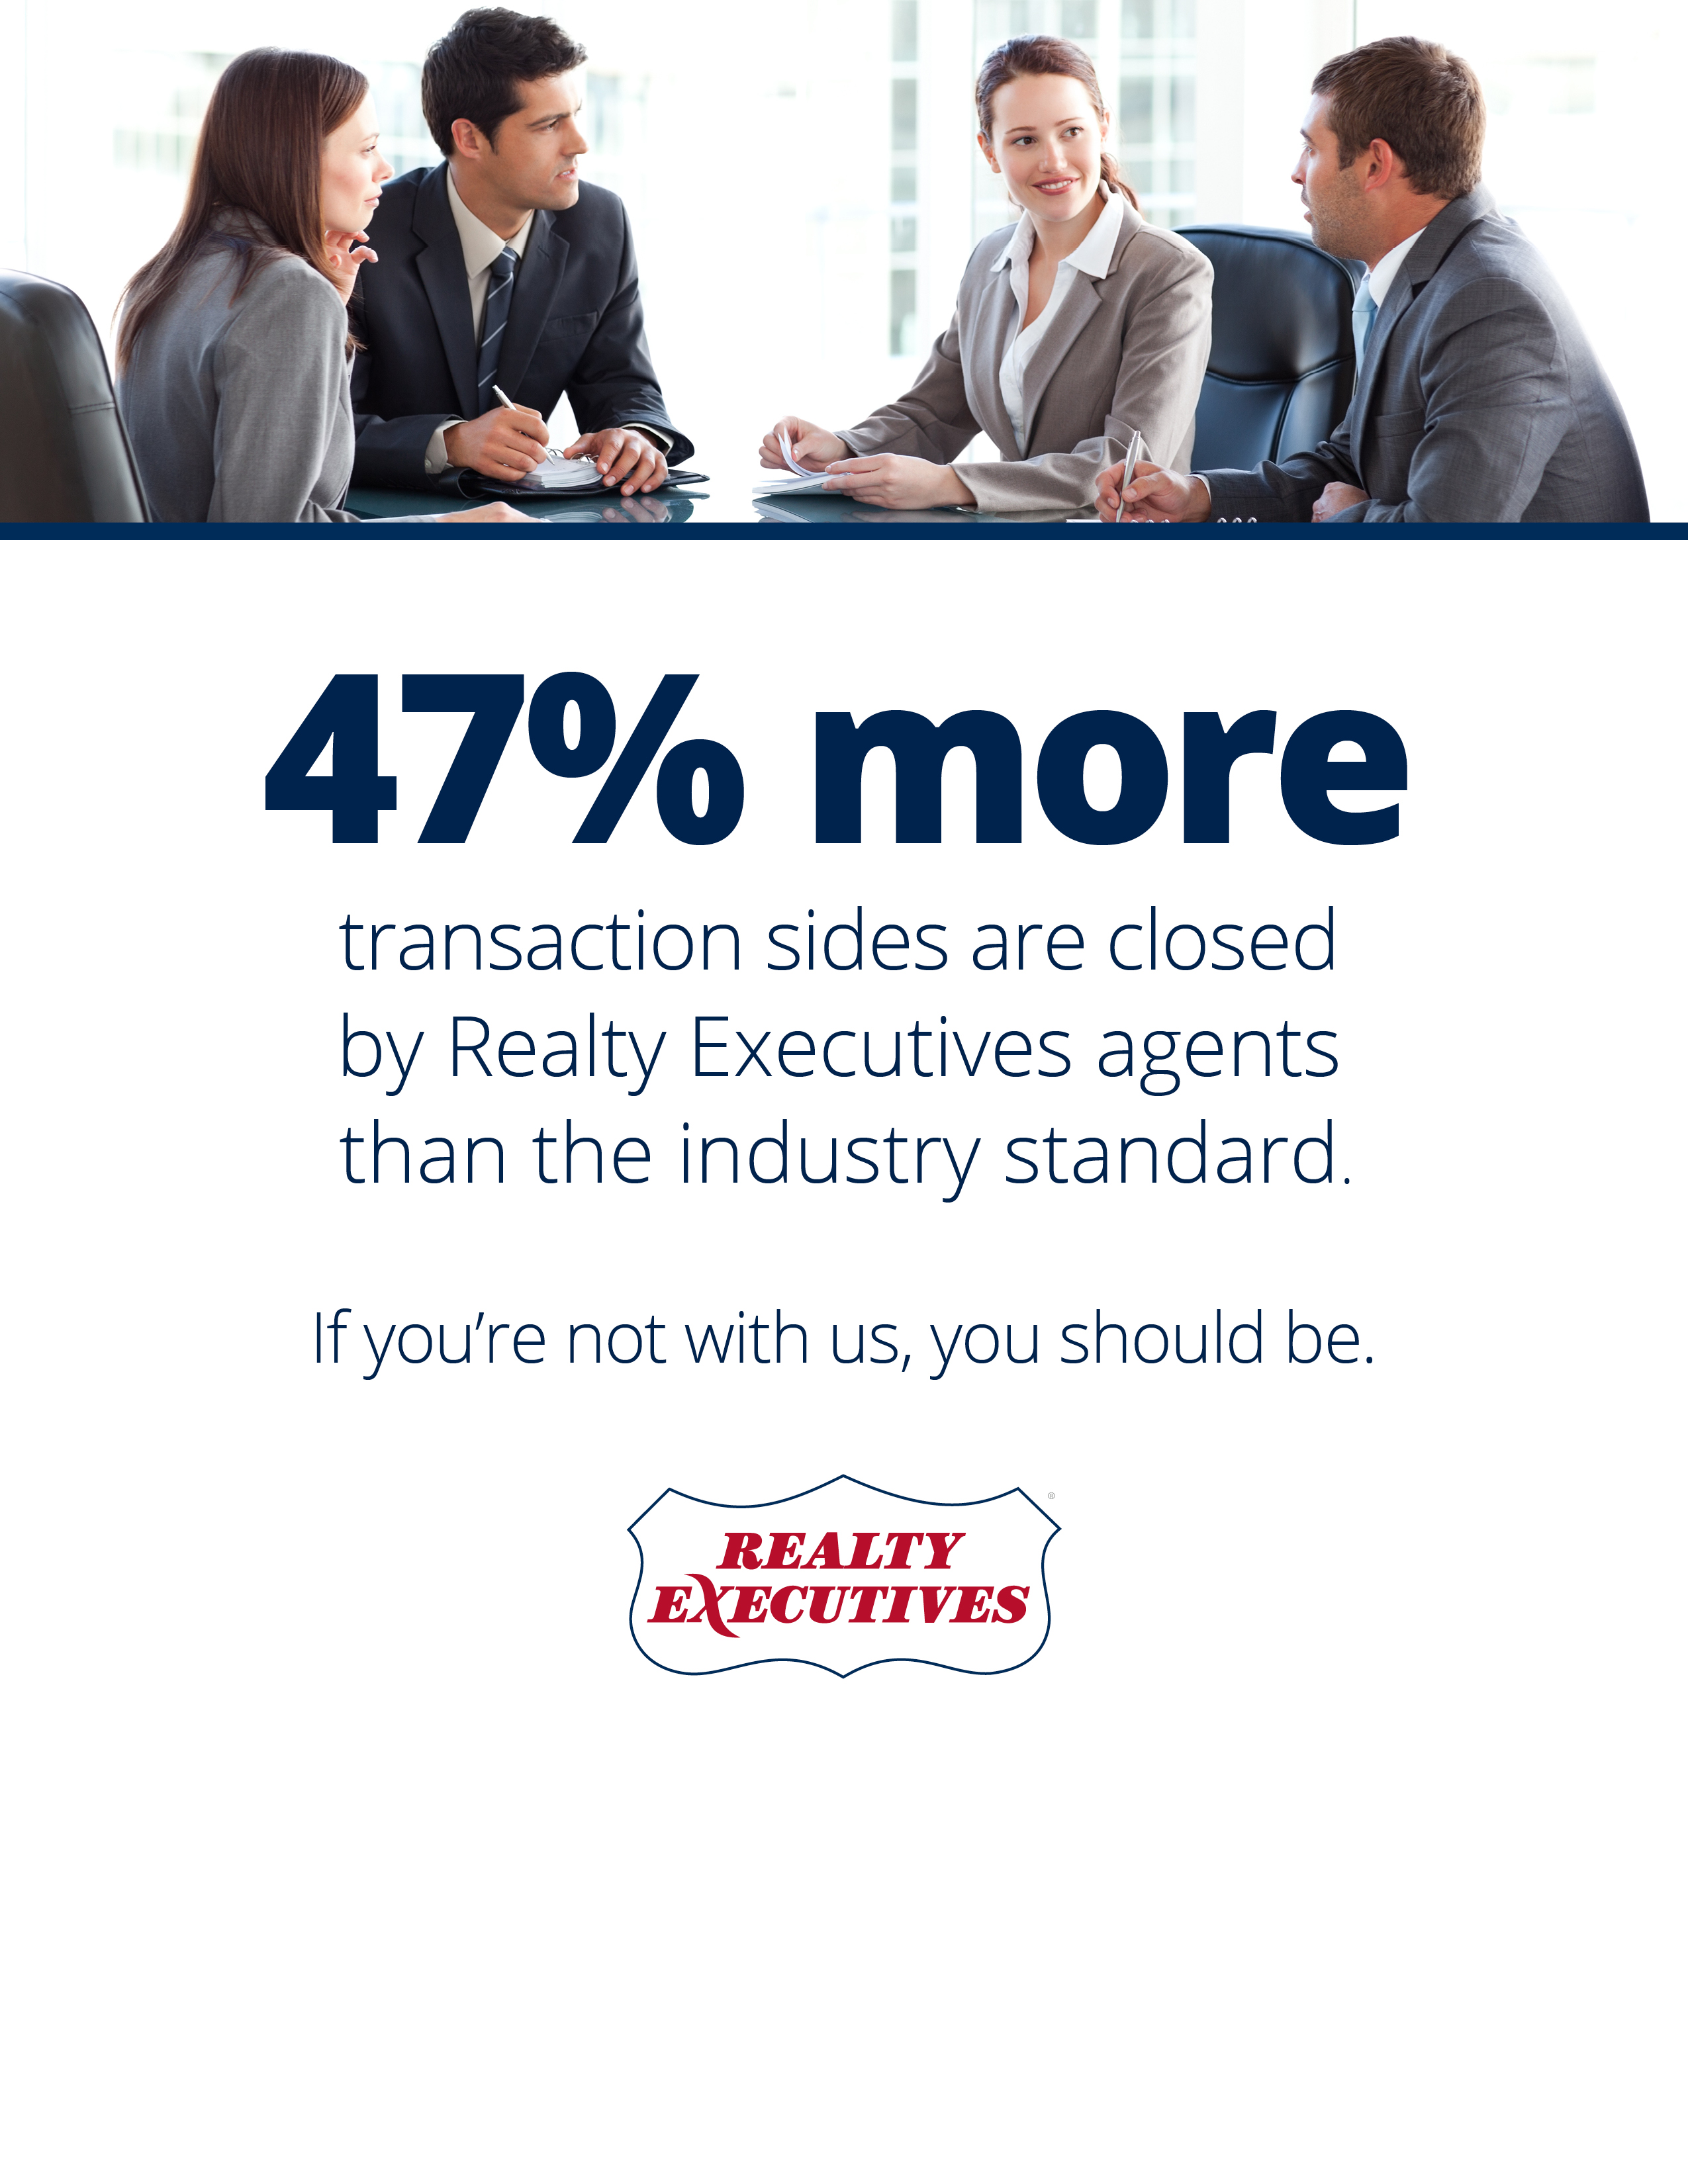 Hiring Real Estate Agents in Nutley